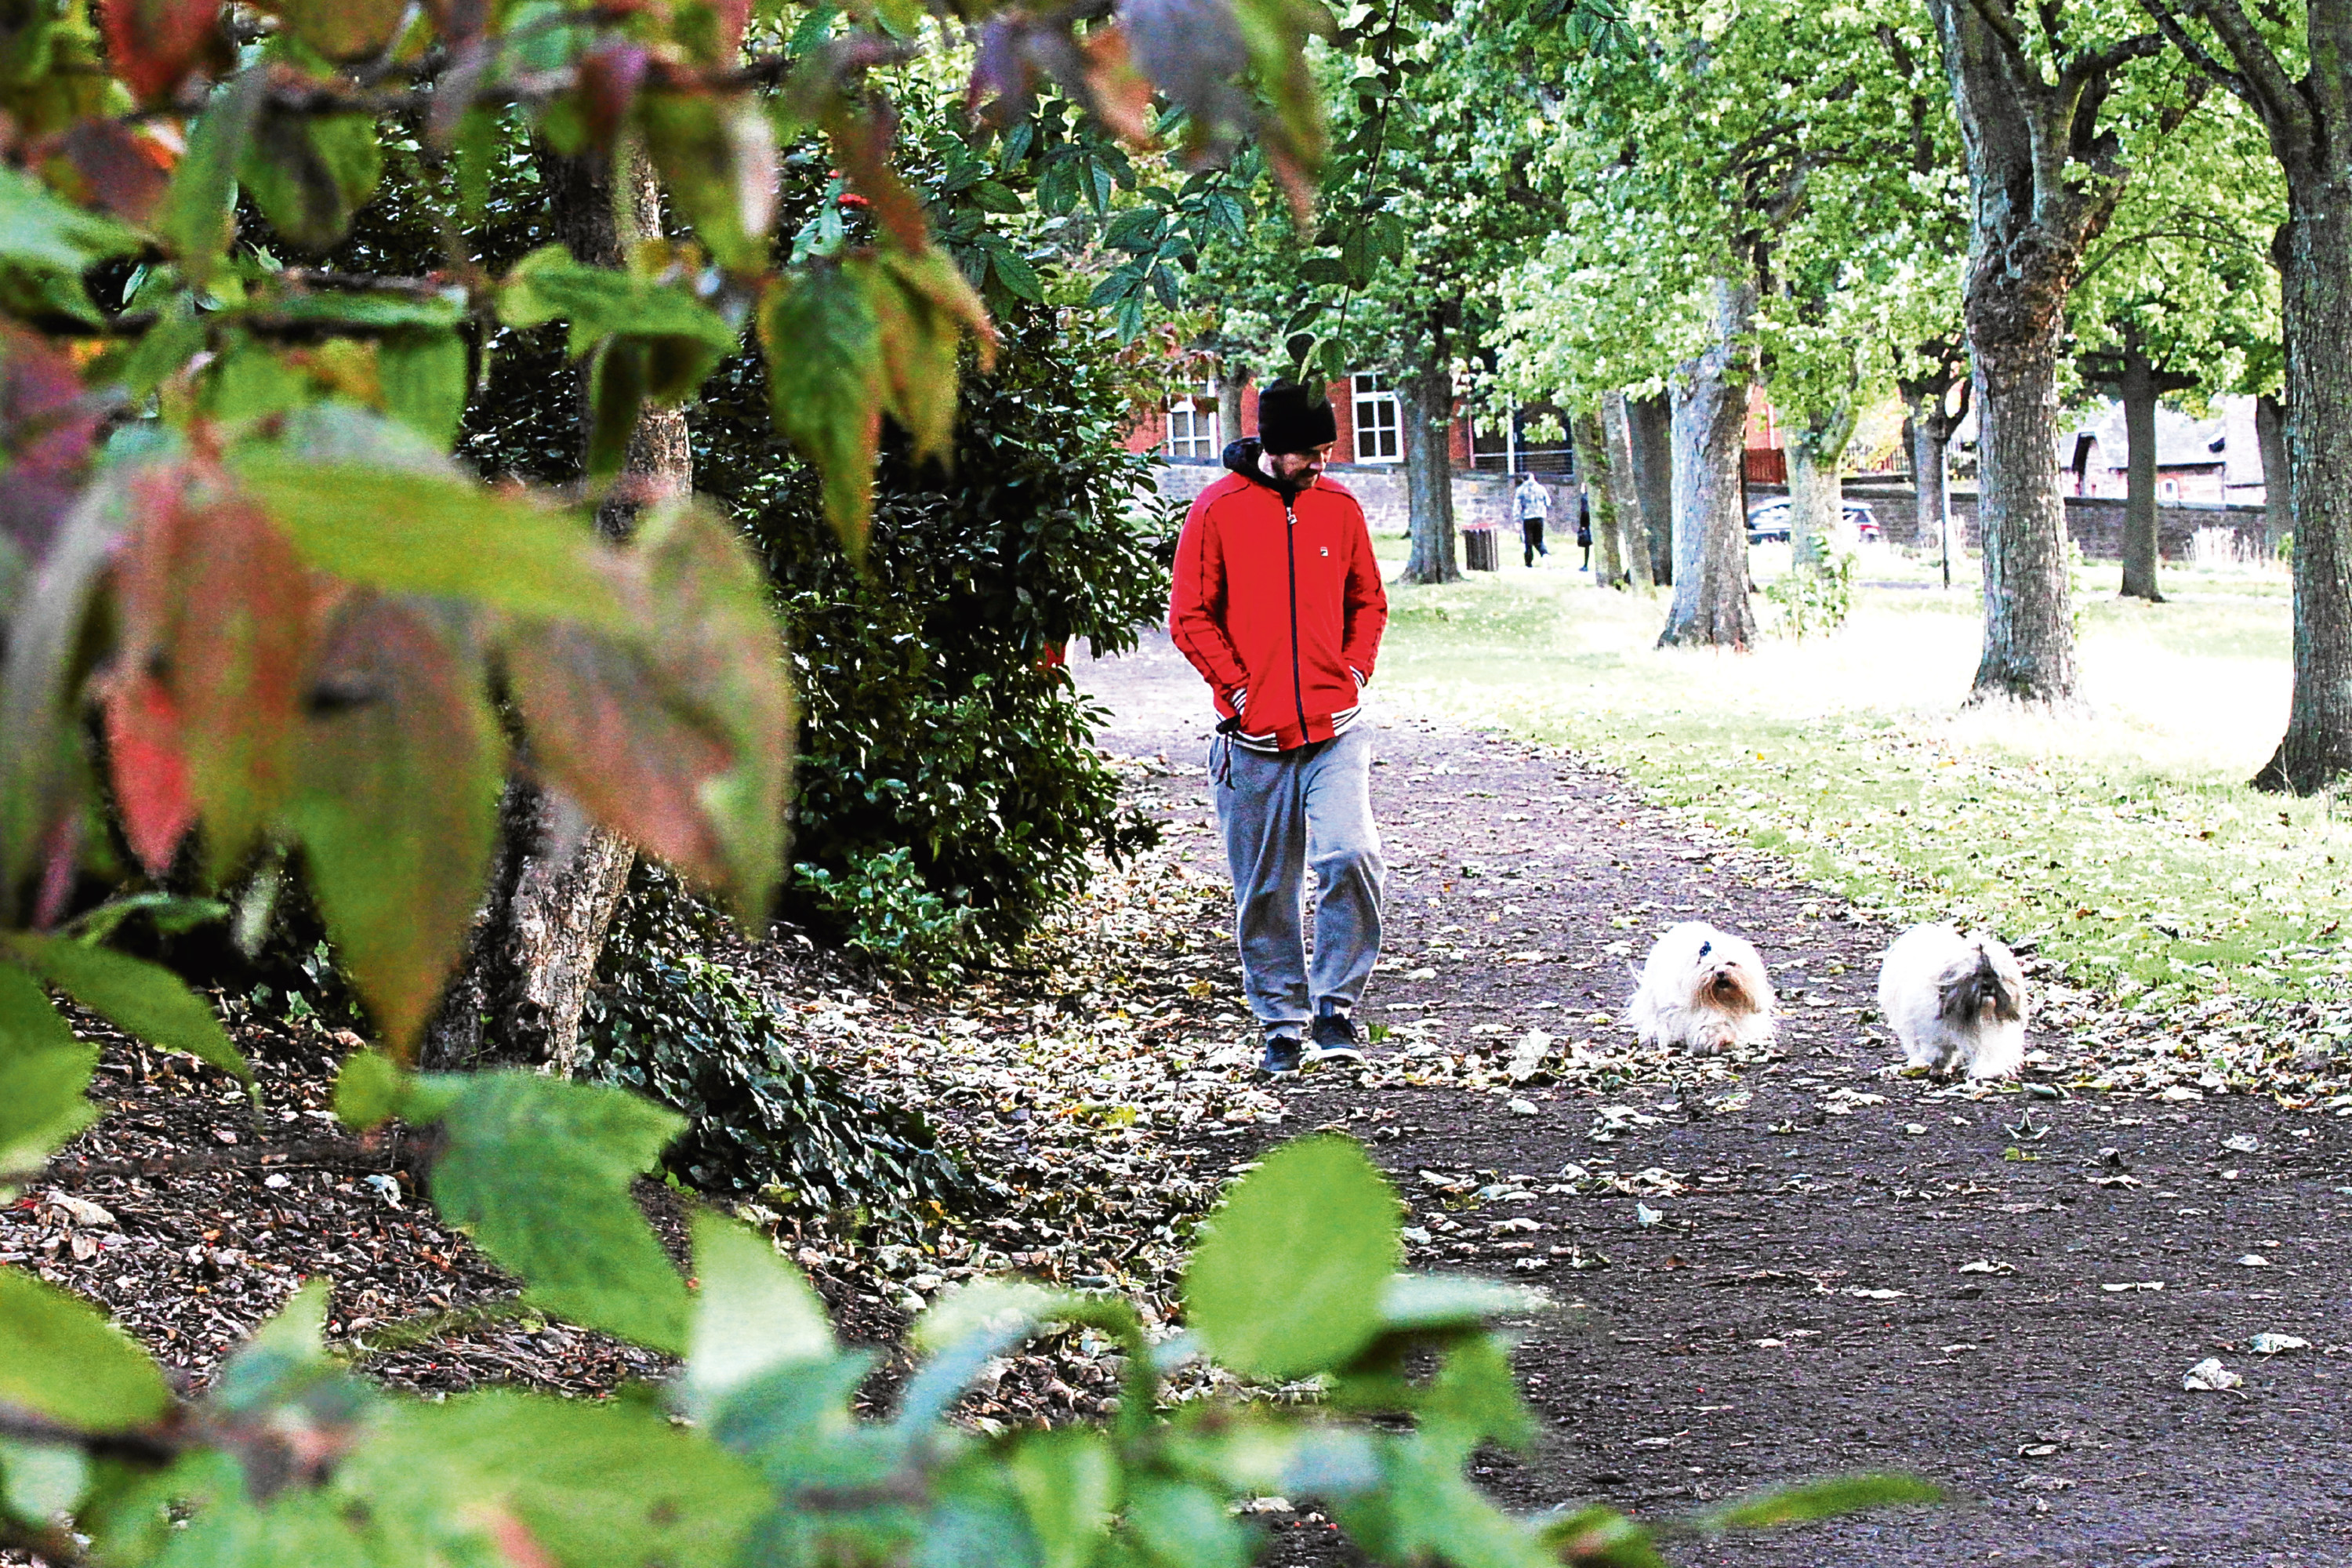 Sean Mitchell, 43, of Dudhope, takes a stroll through the park with his with dogs.